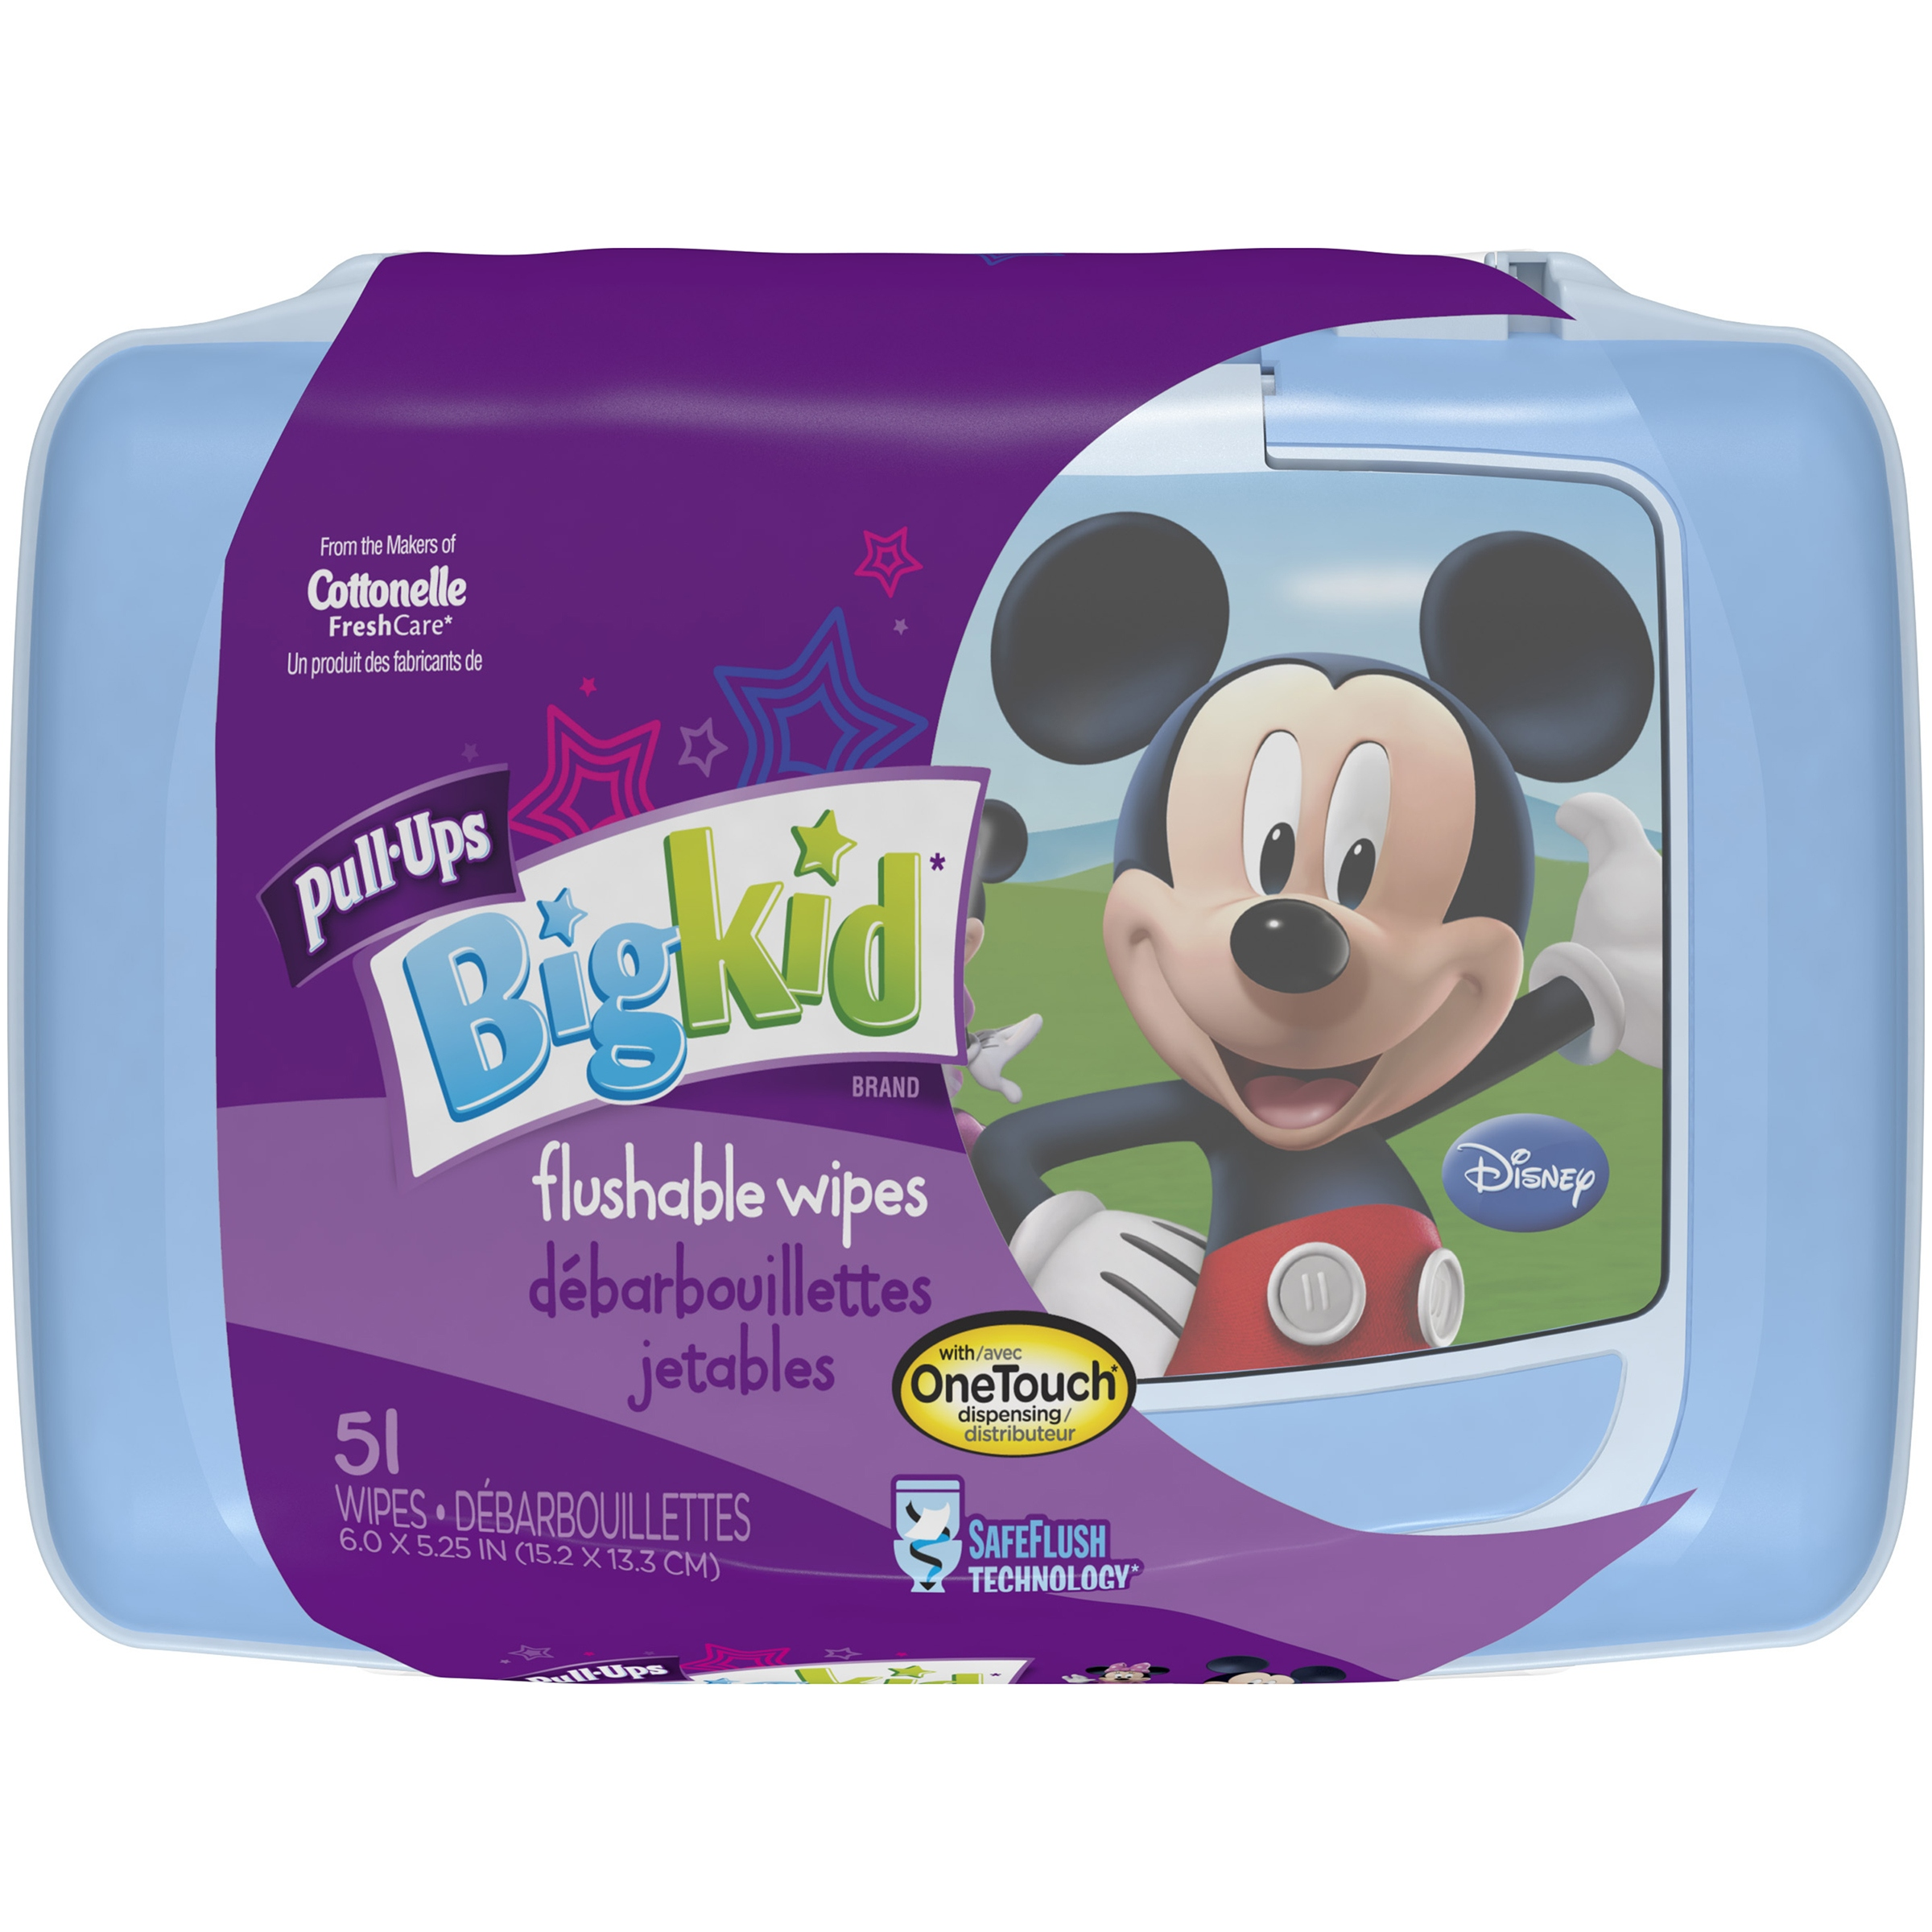 Huggies Pull-Ups Big Kid Flushable Wipes (51 count)